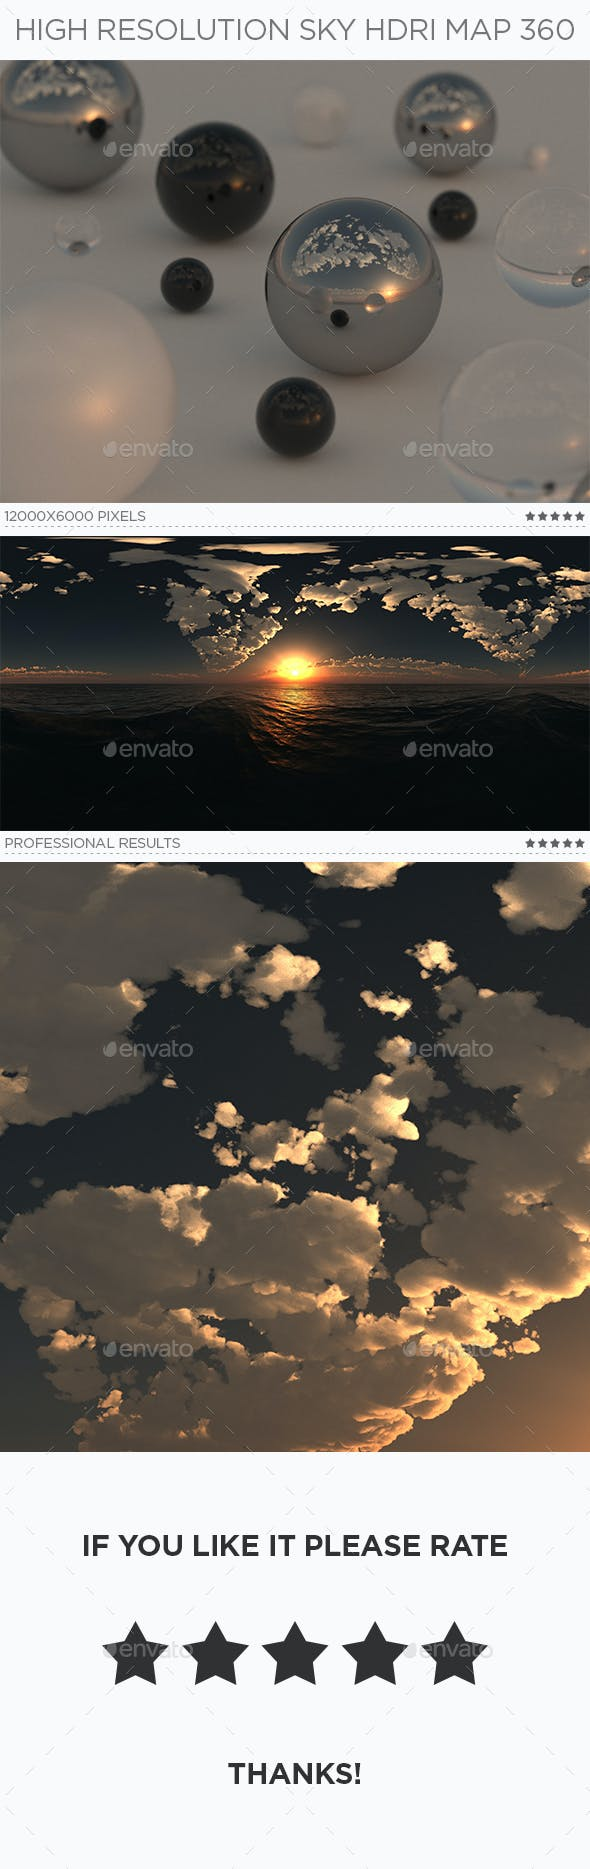 High Resolution Sky HDRi Map 360 - 3DOcean Item for Sale